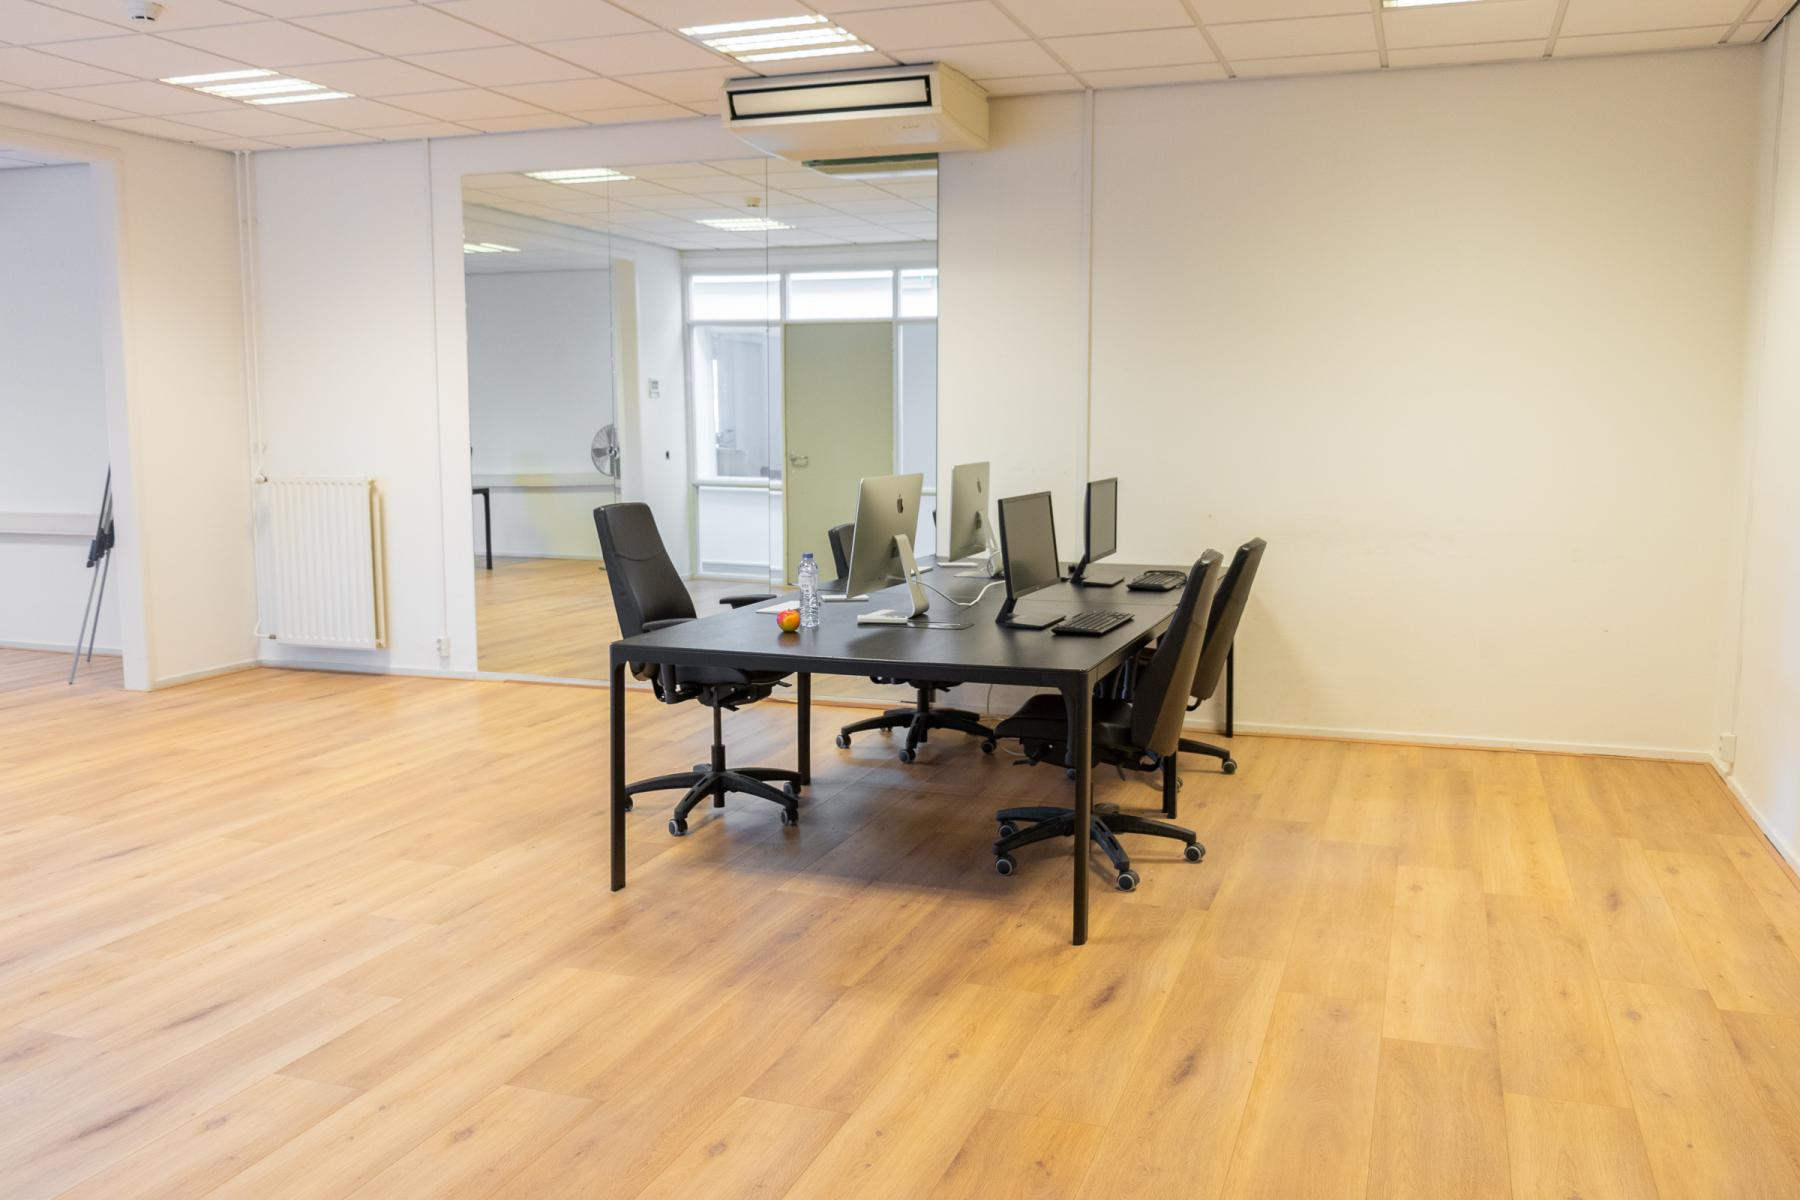 Rent office space Amstel 62, Amsterdam (6)